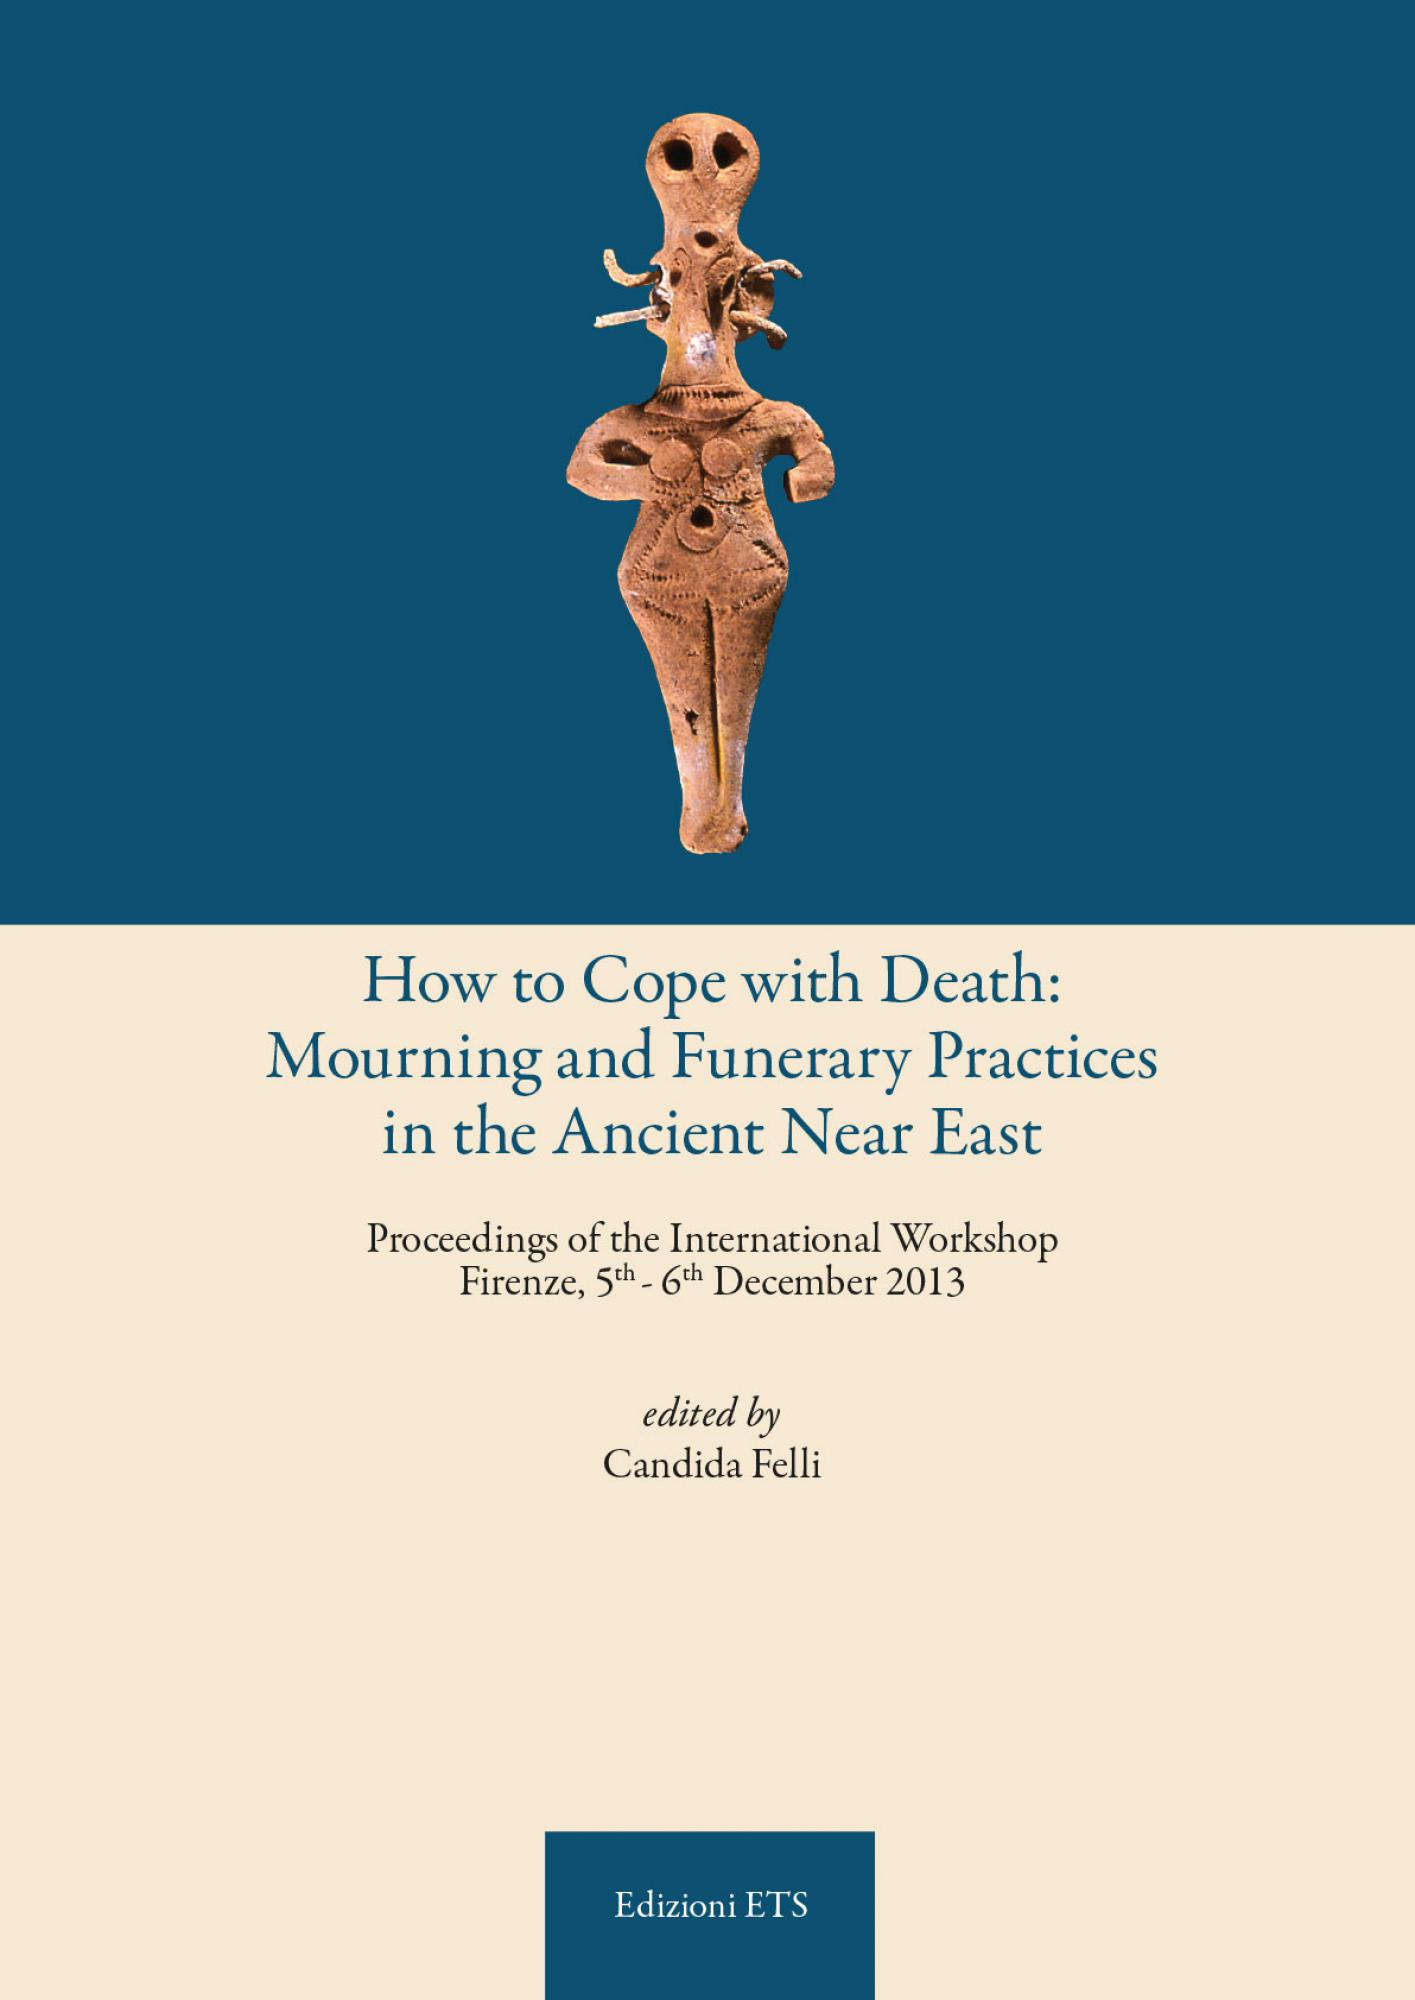 How to Cope with Death: Mourning and Funerary practices in the Ancient Near East.